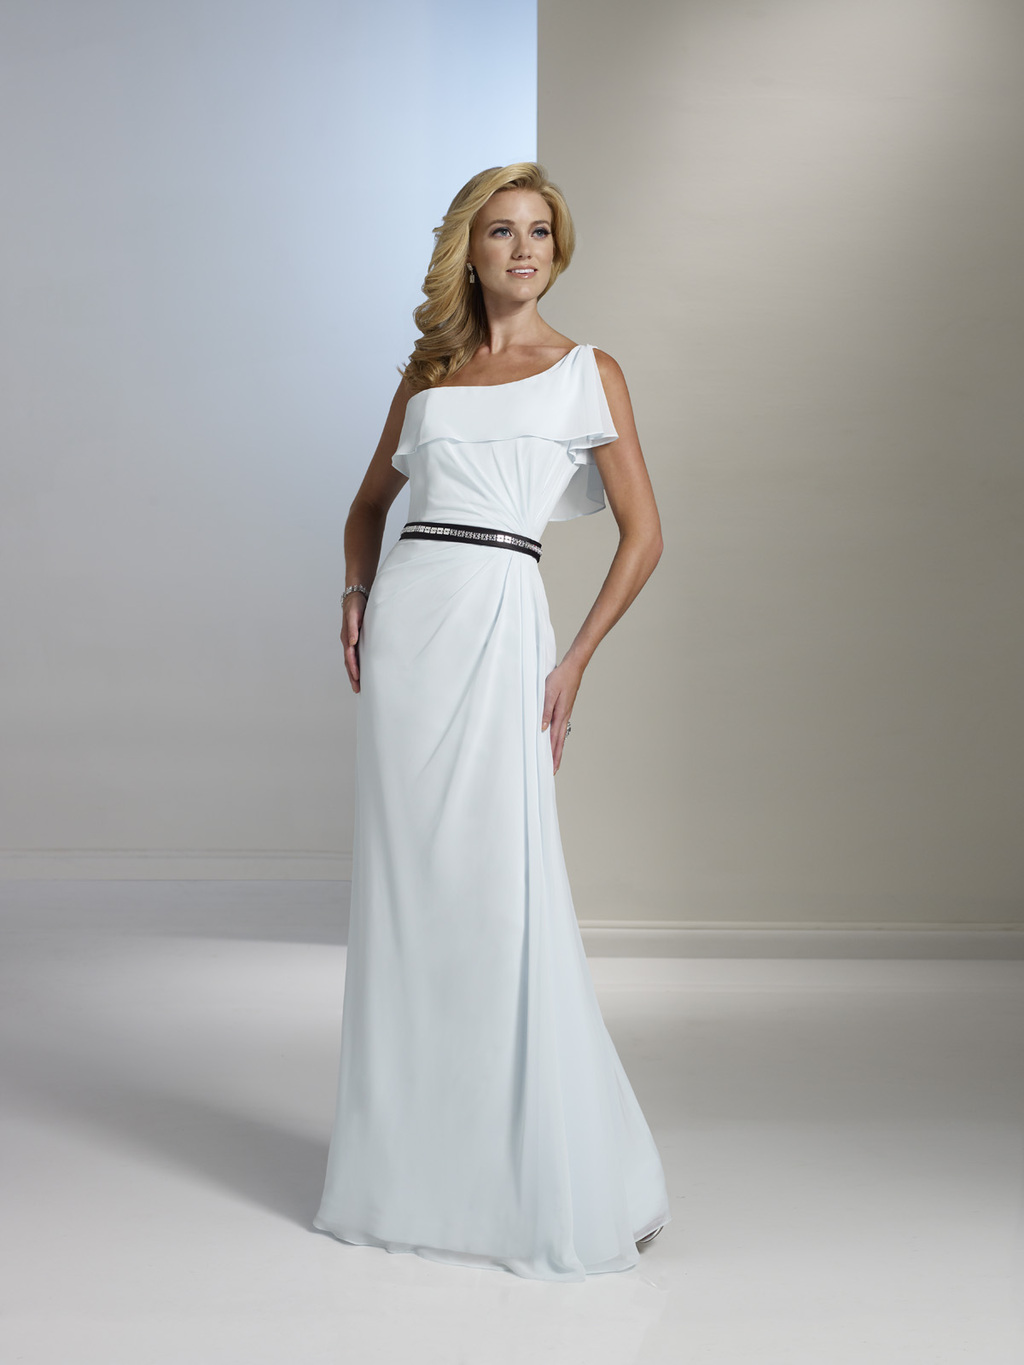 Chic-mother-of-the-bride-dresses-wedding-fashion-dos-and-donts-mon-cheri-3.full